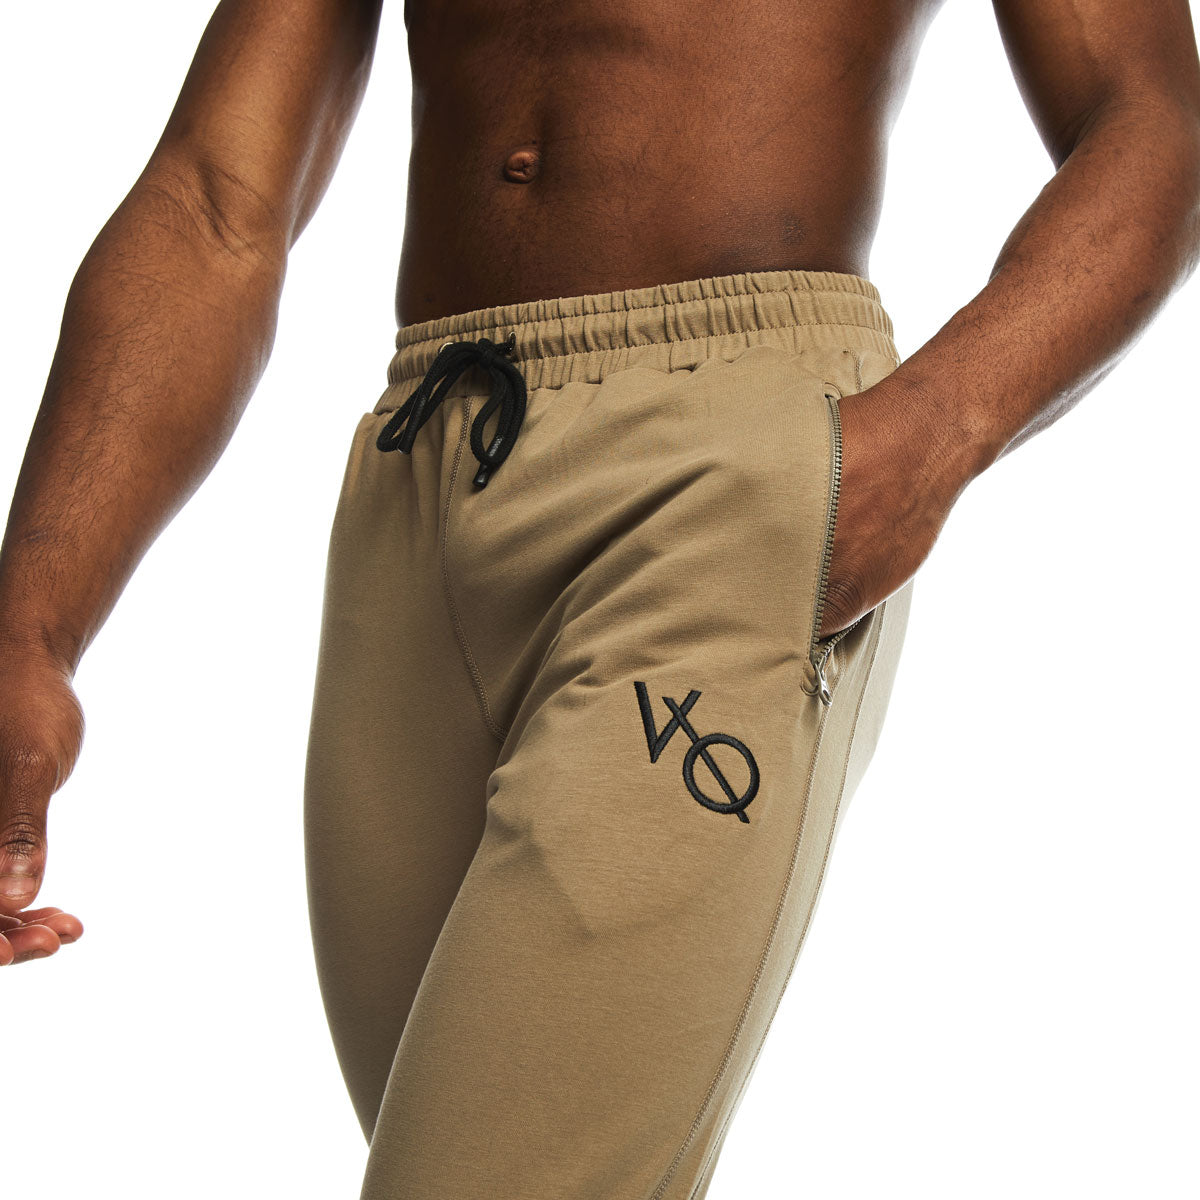 VQFIT Khaki Eclipse Tapered Sweatpants